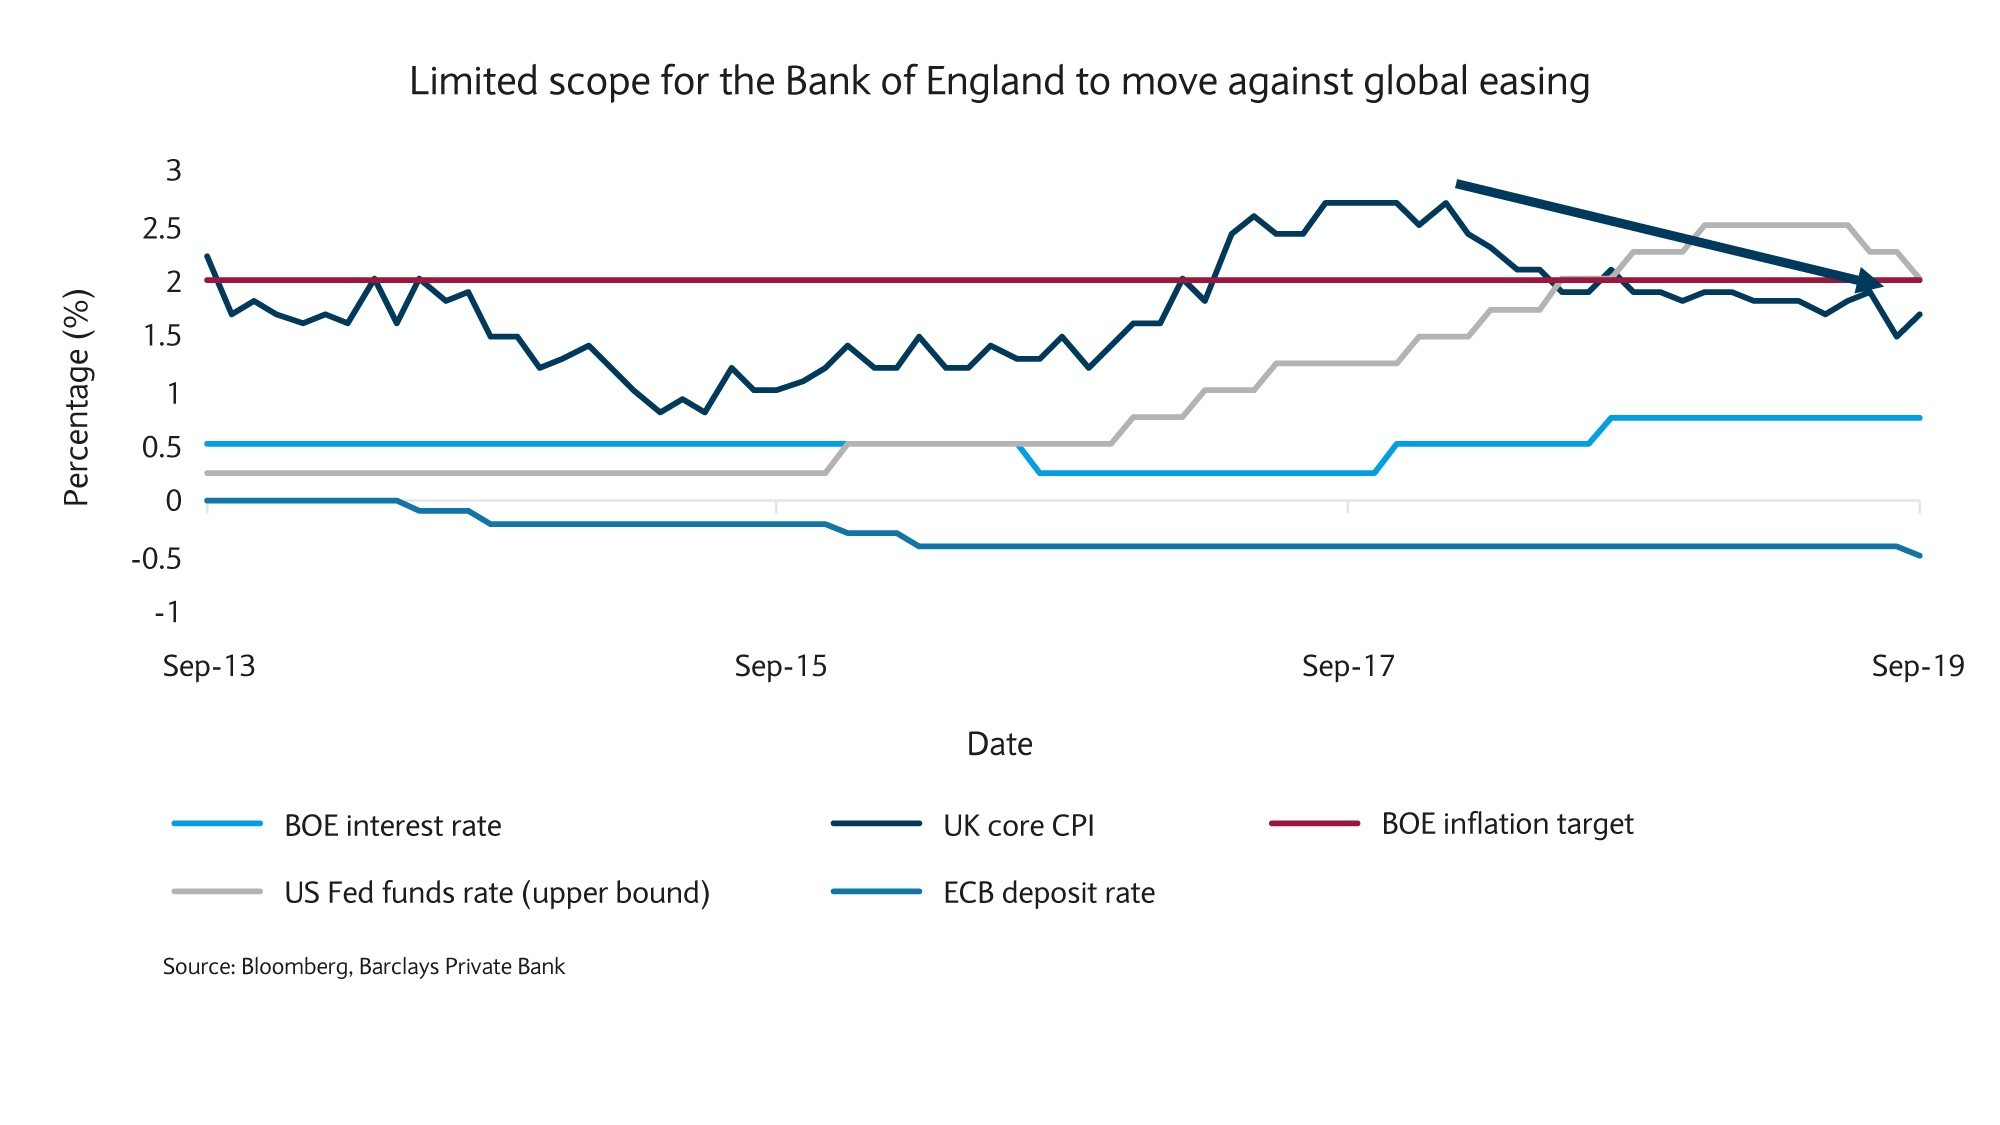 Limited scope for BOE to kove against global easing